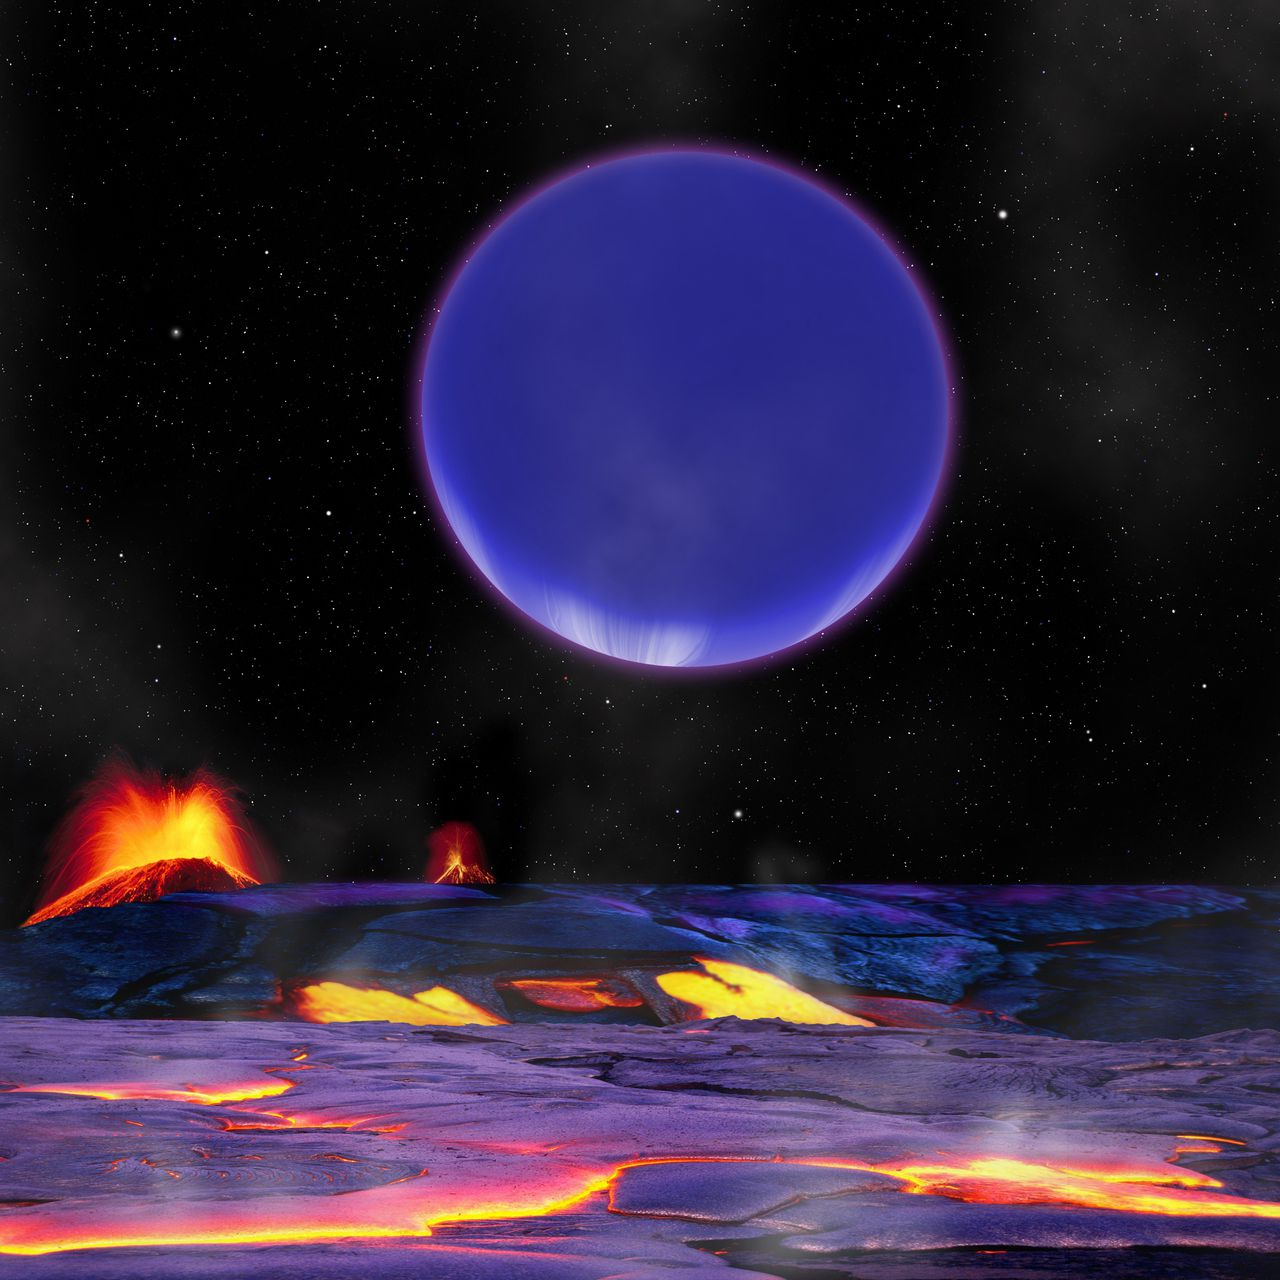 """ATTENTION - EMBARGO - RELEASABLE JUNE 21, 2012 AT 1800 GMT(14:00 ET). THIS RESTRICTION APPLIES TO ALL MEDIA INCLUDING WEBSITES TO GO WITH AFP STORY US-SCIENCE-ASTRONOMY This image courtesy of Harvard-Smithsonian Center for Astrophysics shows an artist's conception, of a """"hot Neptune"""" known as Kepler-36c as it looms in the sky of its neighbor, the rocky world Kepler-36b. The two planets have repeated close encounters, experiencing a conjunction every 97 days on average. An odd pair of distant worlds -- one rocky like Earth and another gassy like Neptune -- have been found doing the closest dance of any planetary pair ever discovered, US scientists said on June 21, 2012. The duo are orbiting their star about 1,200 light years from Earth, and were discovered with NASA's Kepler space telescope which launched in 2009 in search of Earth-like planets orbiting stars similar to our Sun. Their star is probably a lot like our Sun but several billion years older, and the planets are much closer to it, said the study in Science Express, the online edition of the journal Science. AFP PHOTO/HARVARD-SMITHSONIAN CENTER FOR ASTROPHYSICS/HANDOUT/RESTRICTED TO EDITORIAL USE - MANDATORY CREDIT """" AFP PHOTO / - NO MARKETING NO ADVERTISING CAMPAIGNS - DISTRIBUTED AS A SERVICE TO CLIENTS"""